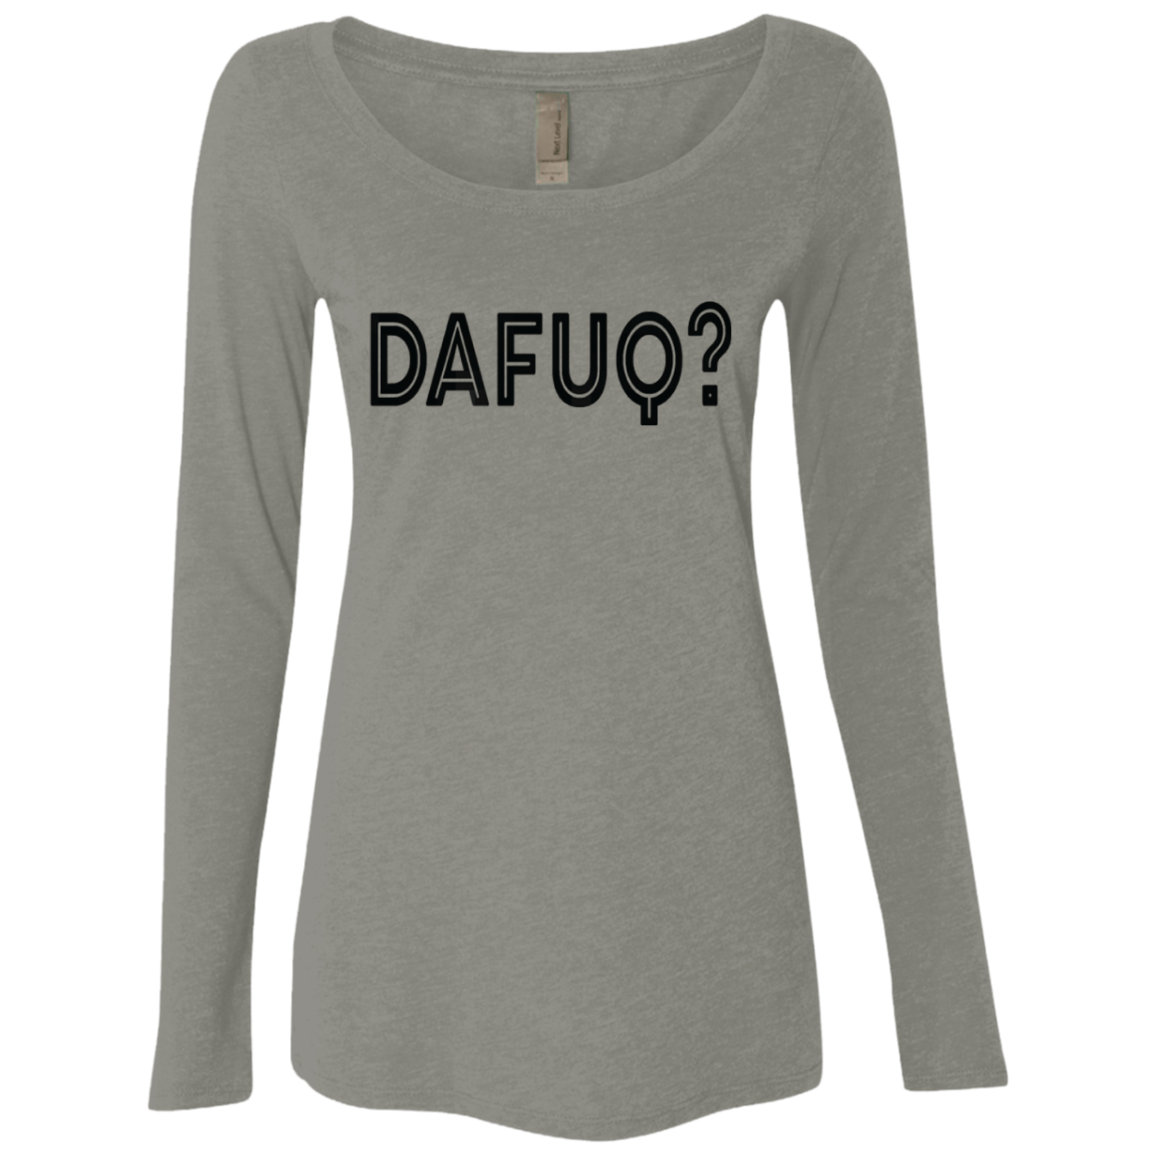 Dafuq Women's Long Sleeve Tee